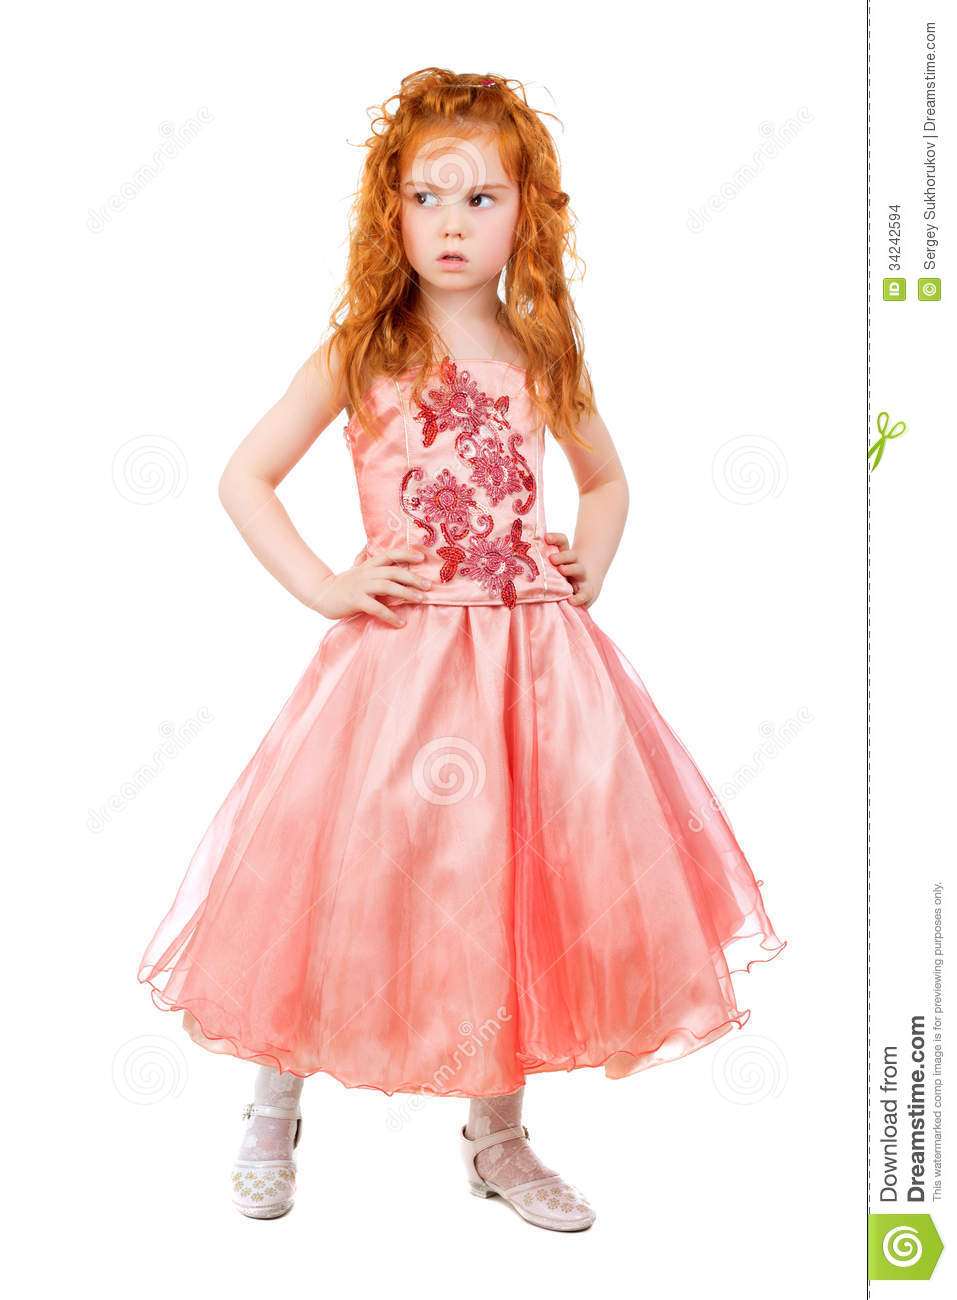 Infants, Toddlers & Kid's Clothing! Whether infants, toddlers, or ready for school, all little girls deserve Pink Princess dresses! Our selection of girls' dresses combines the charm of wonderful design, the convenience of easy care and comfortable fit, and the surprise of unbelievably low prices.